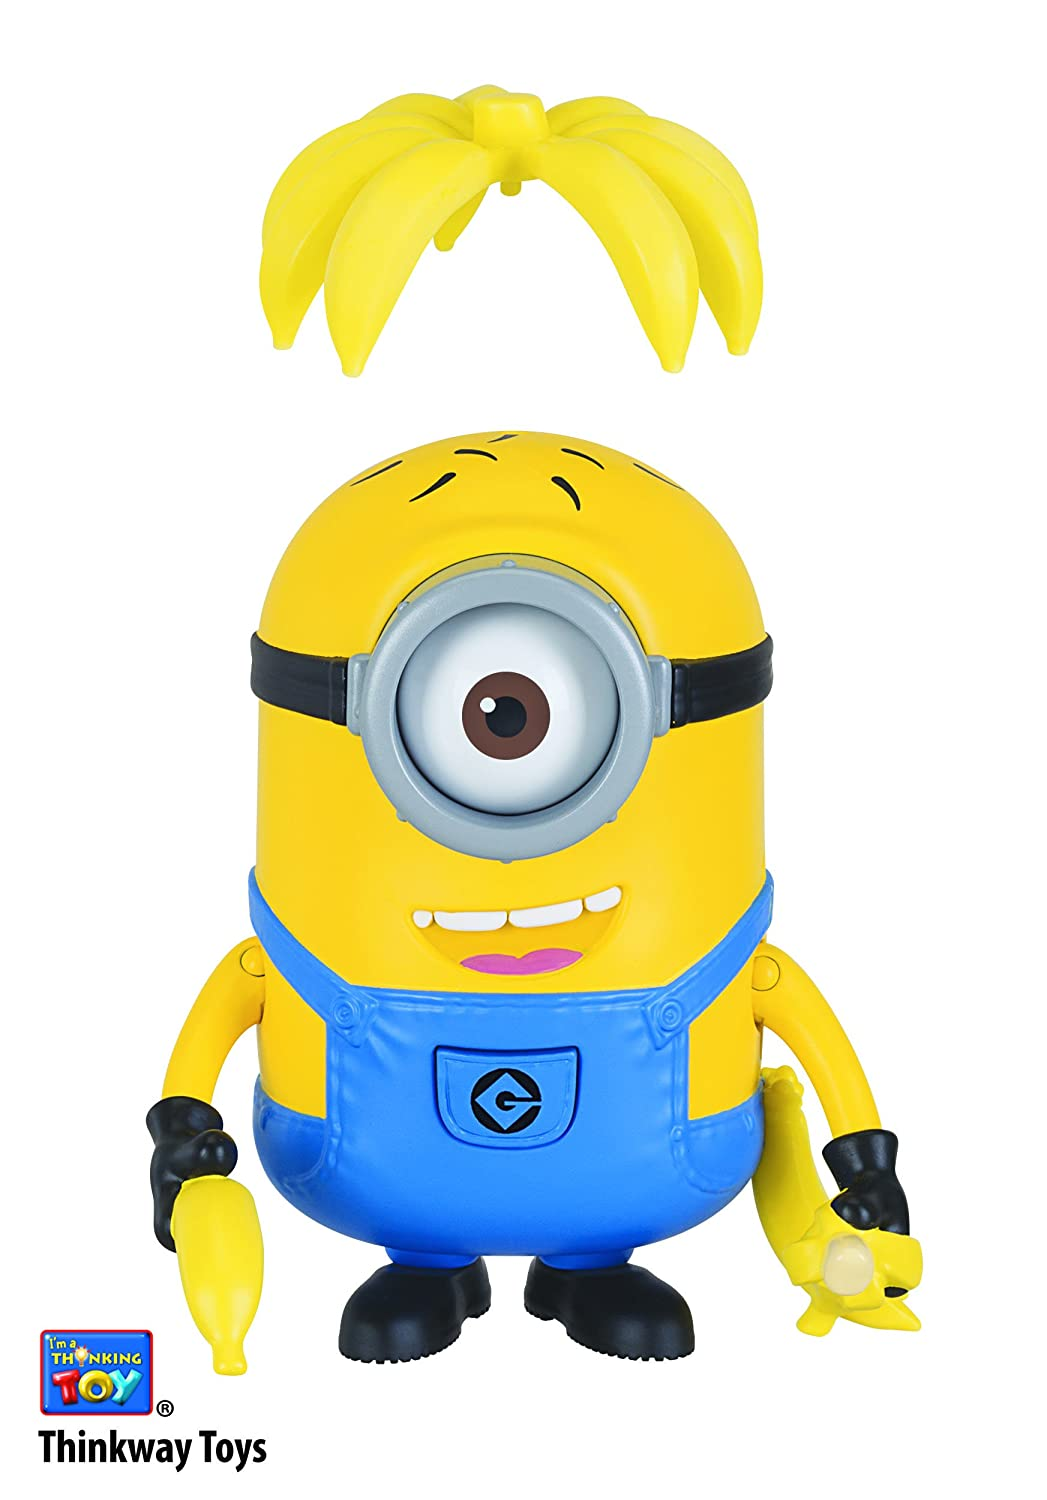 Despicable Me Deluxe Action Figure Banana Crazy Carl Toy Figure Thinkway Toys 20244